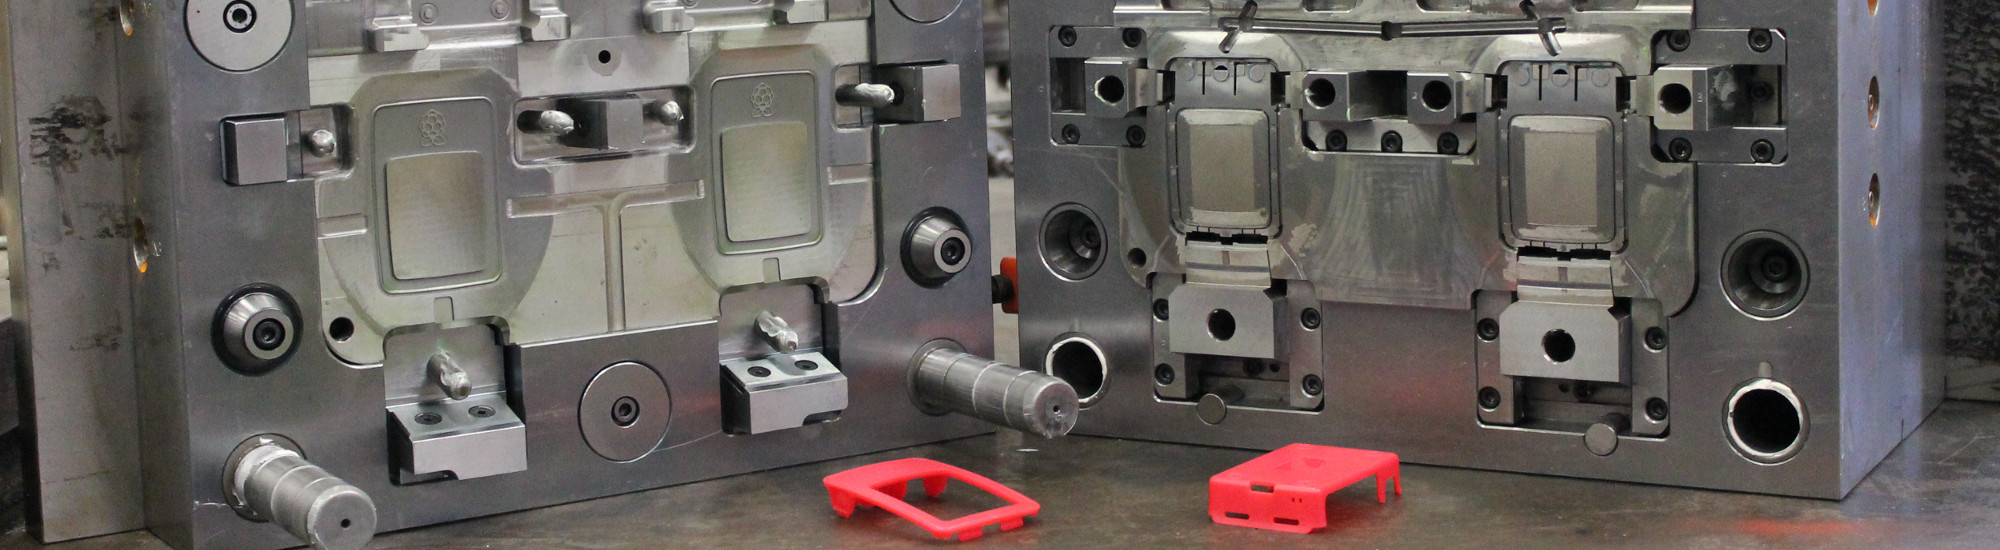 KPT UK Toolmakers - Injection Moulds & die cast tooling